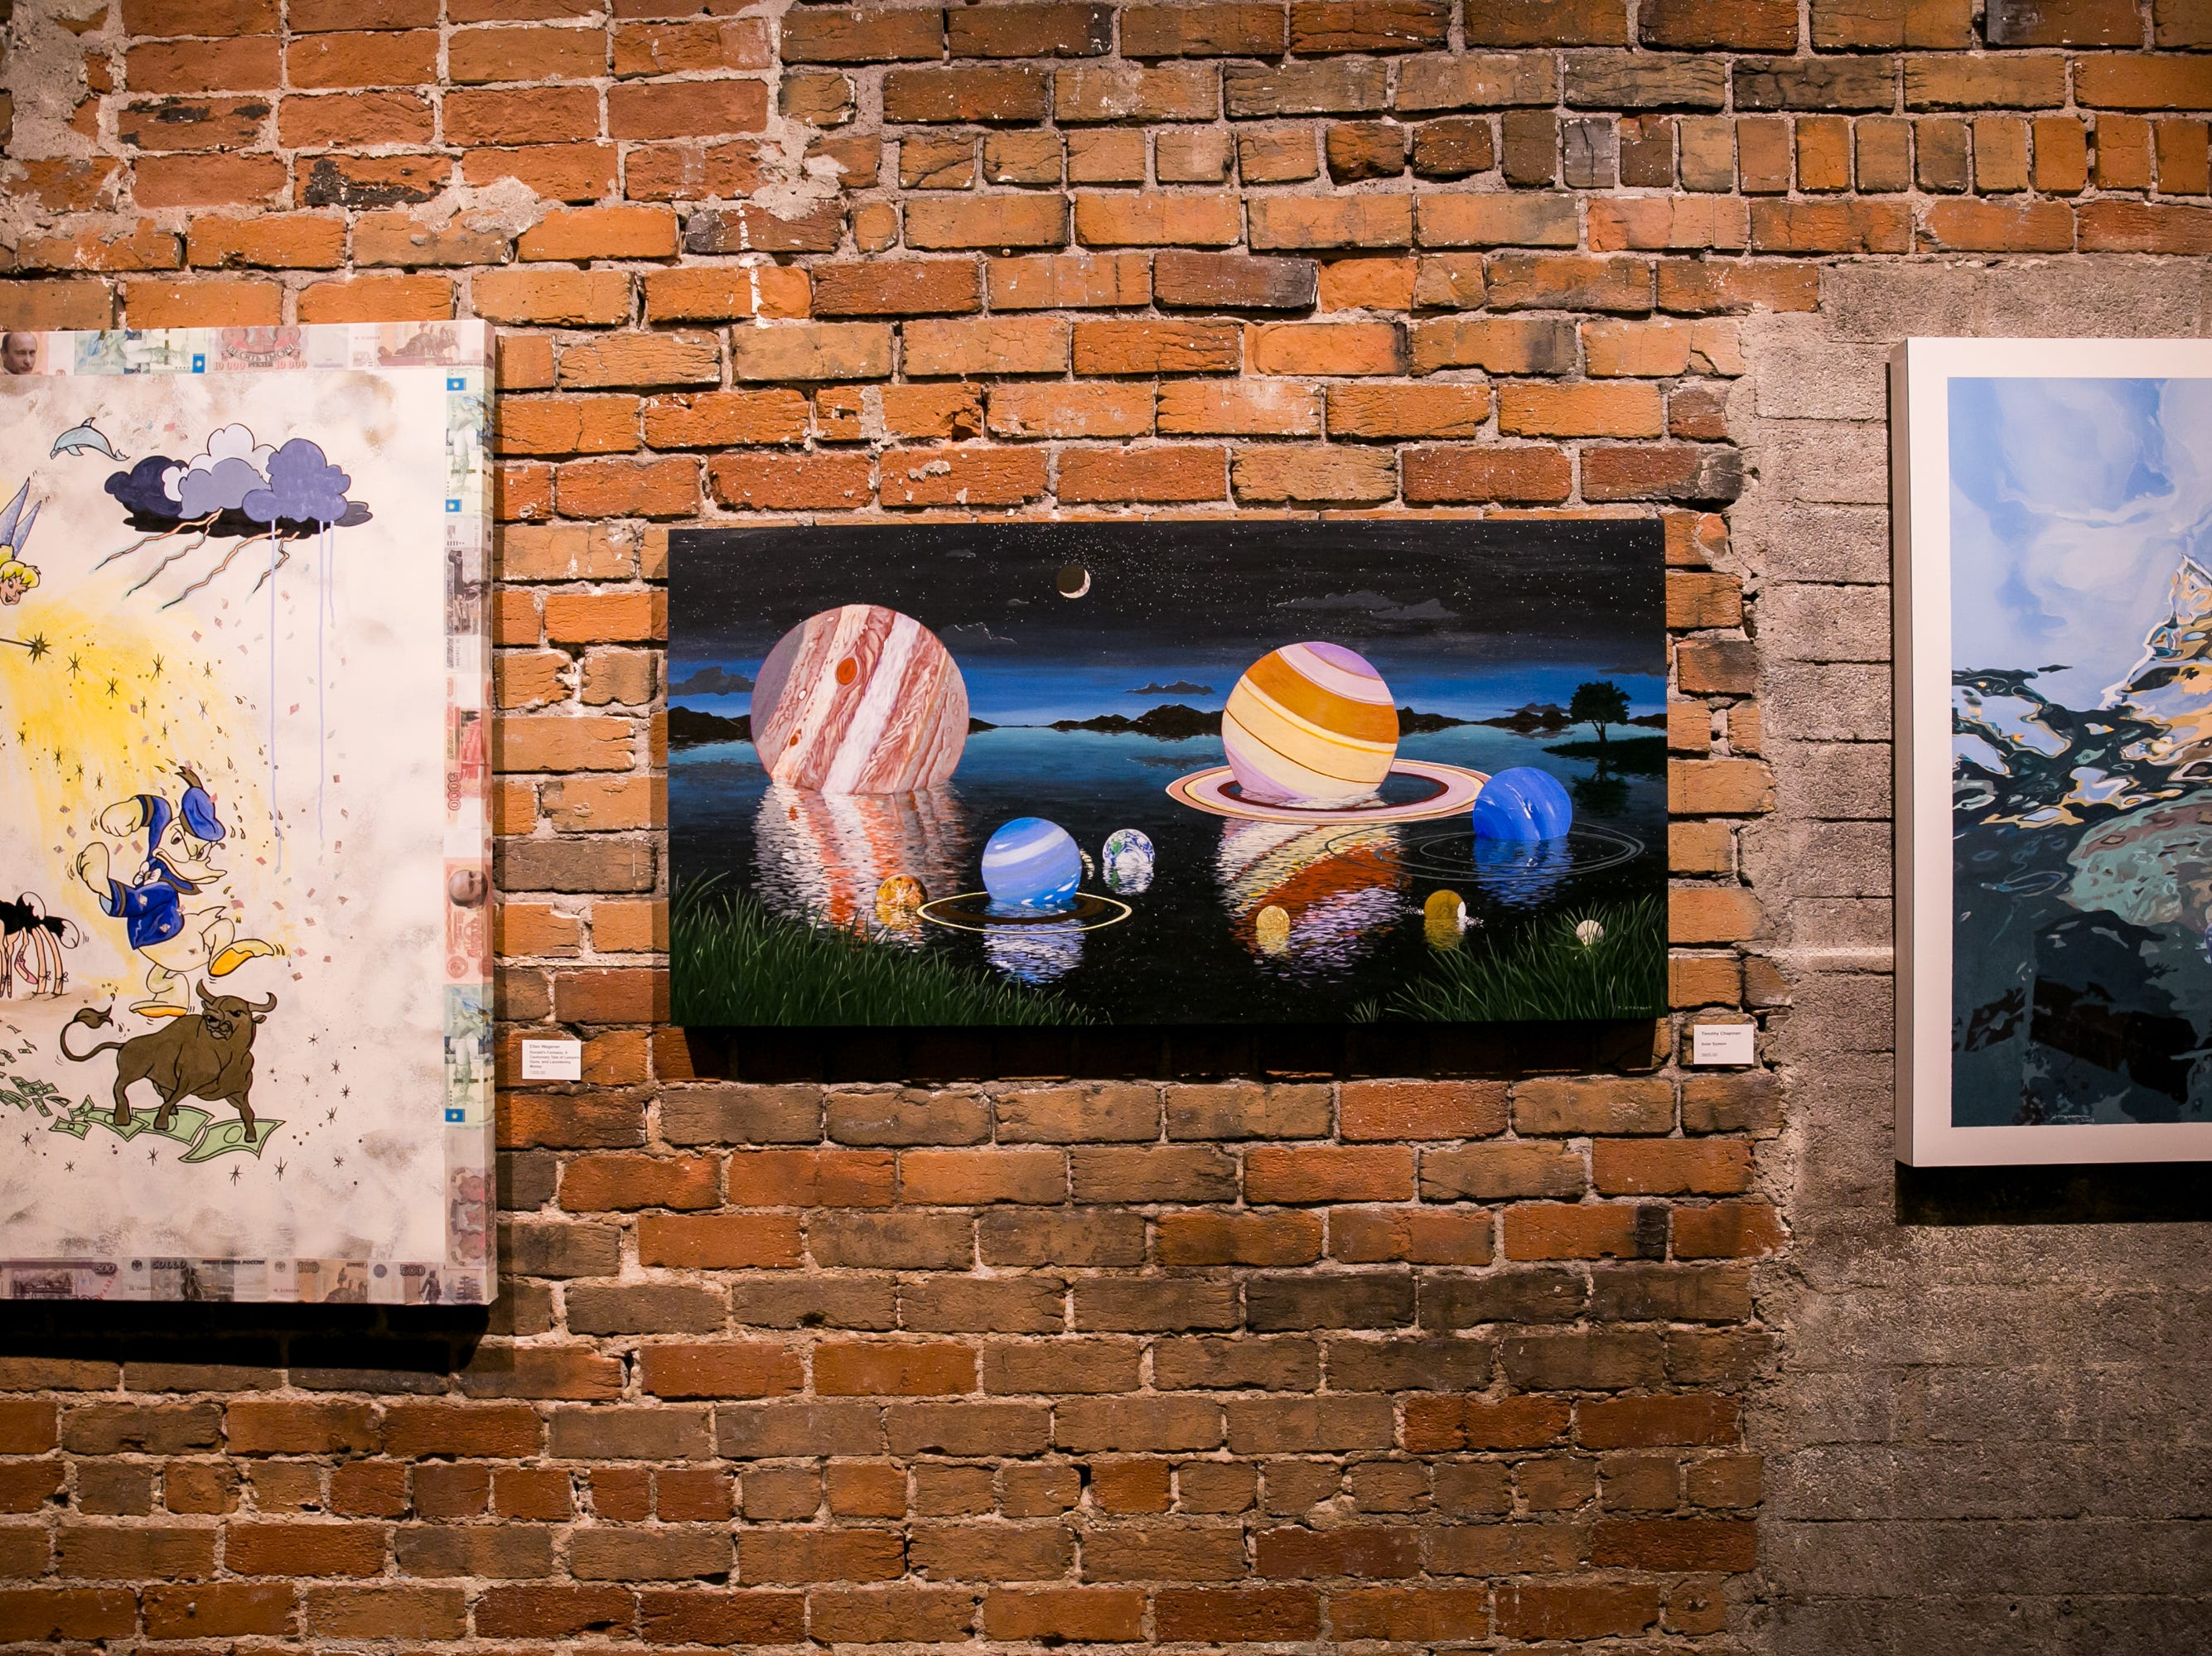 Tons of great work was featured at Chaos Theory 19 at Legend City Studios during First Friday on October 5, 2018.